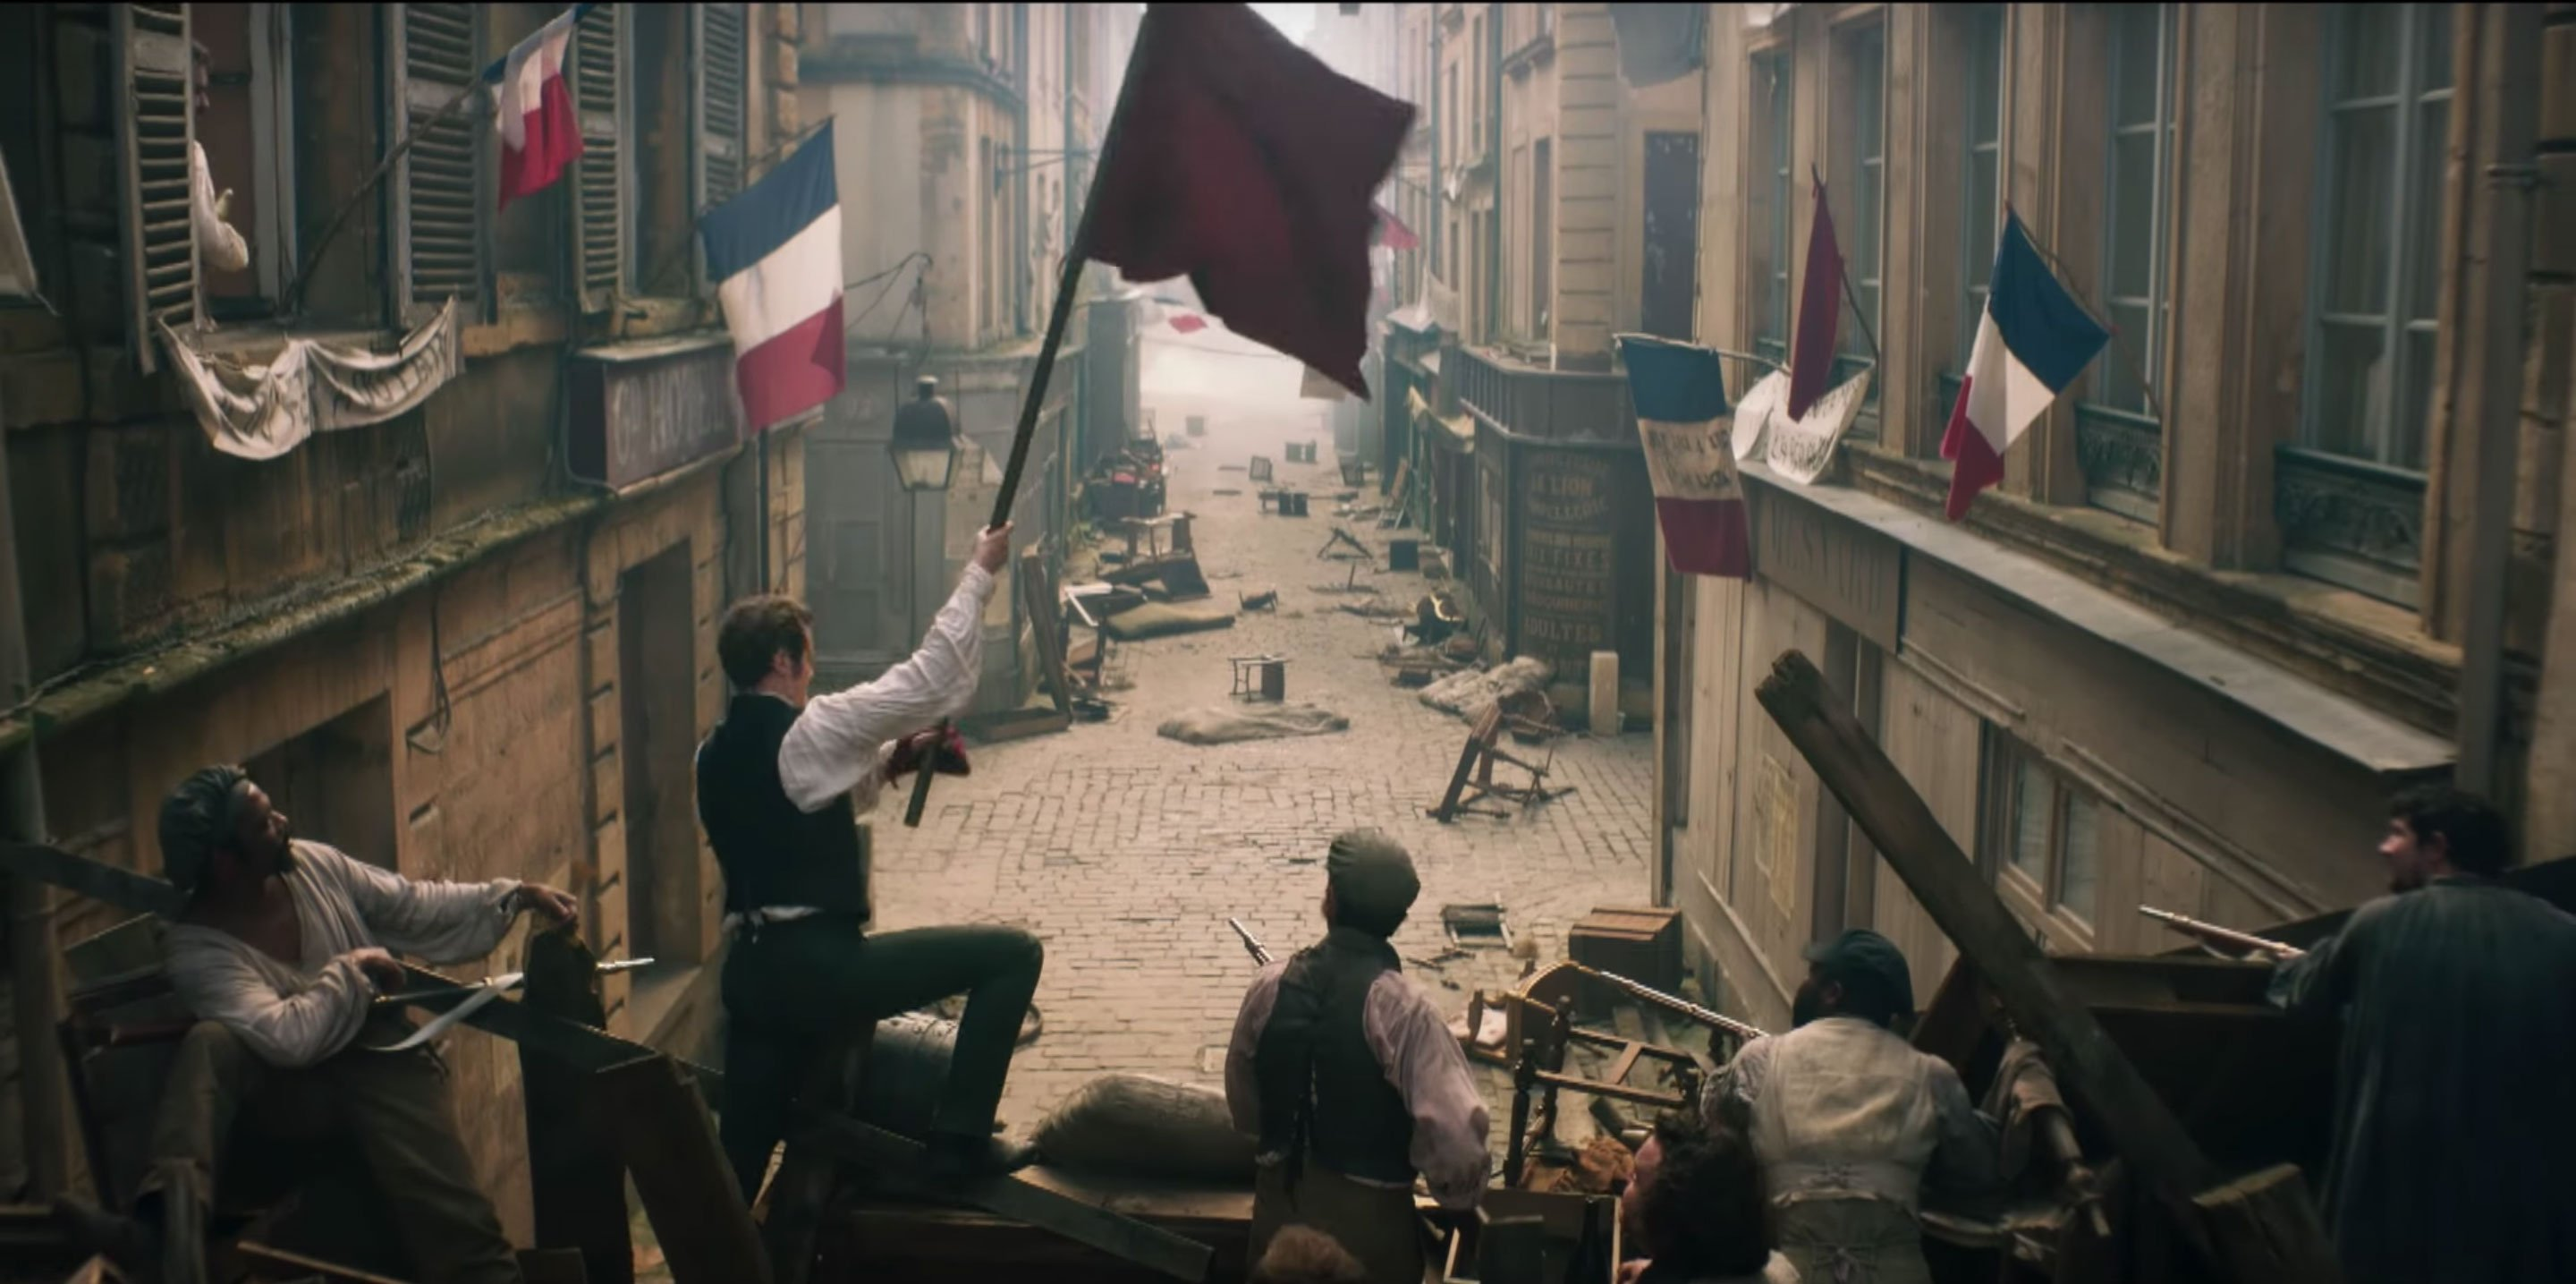 Watch Olivia Colman, Dominic West, and more in 'Les Miserables' trailer